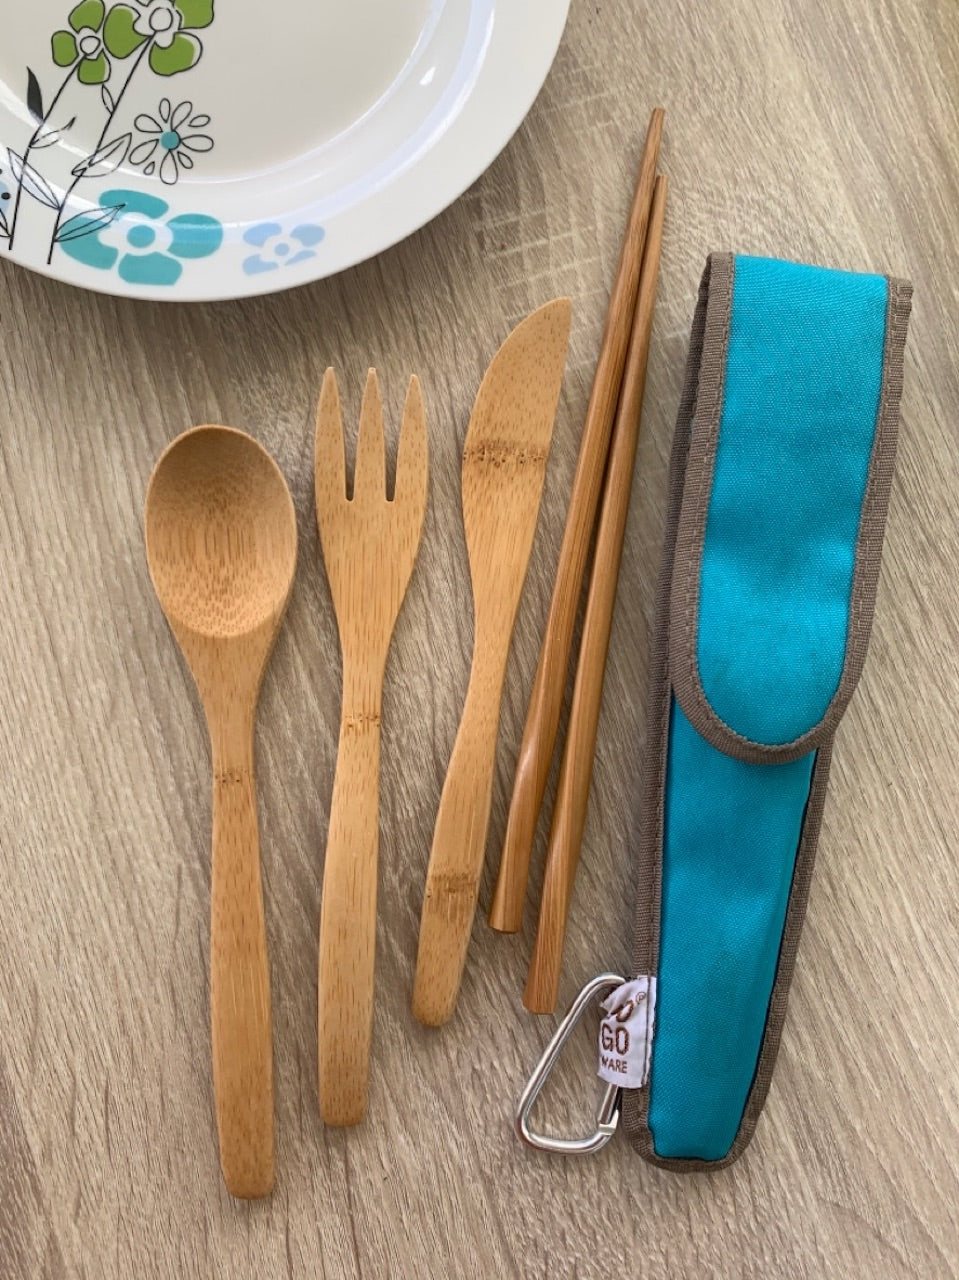 Reusable Bamboo Utensils Set with travel case - Ecotienda La Chiwi